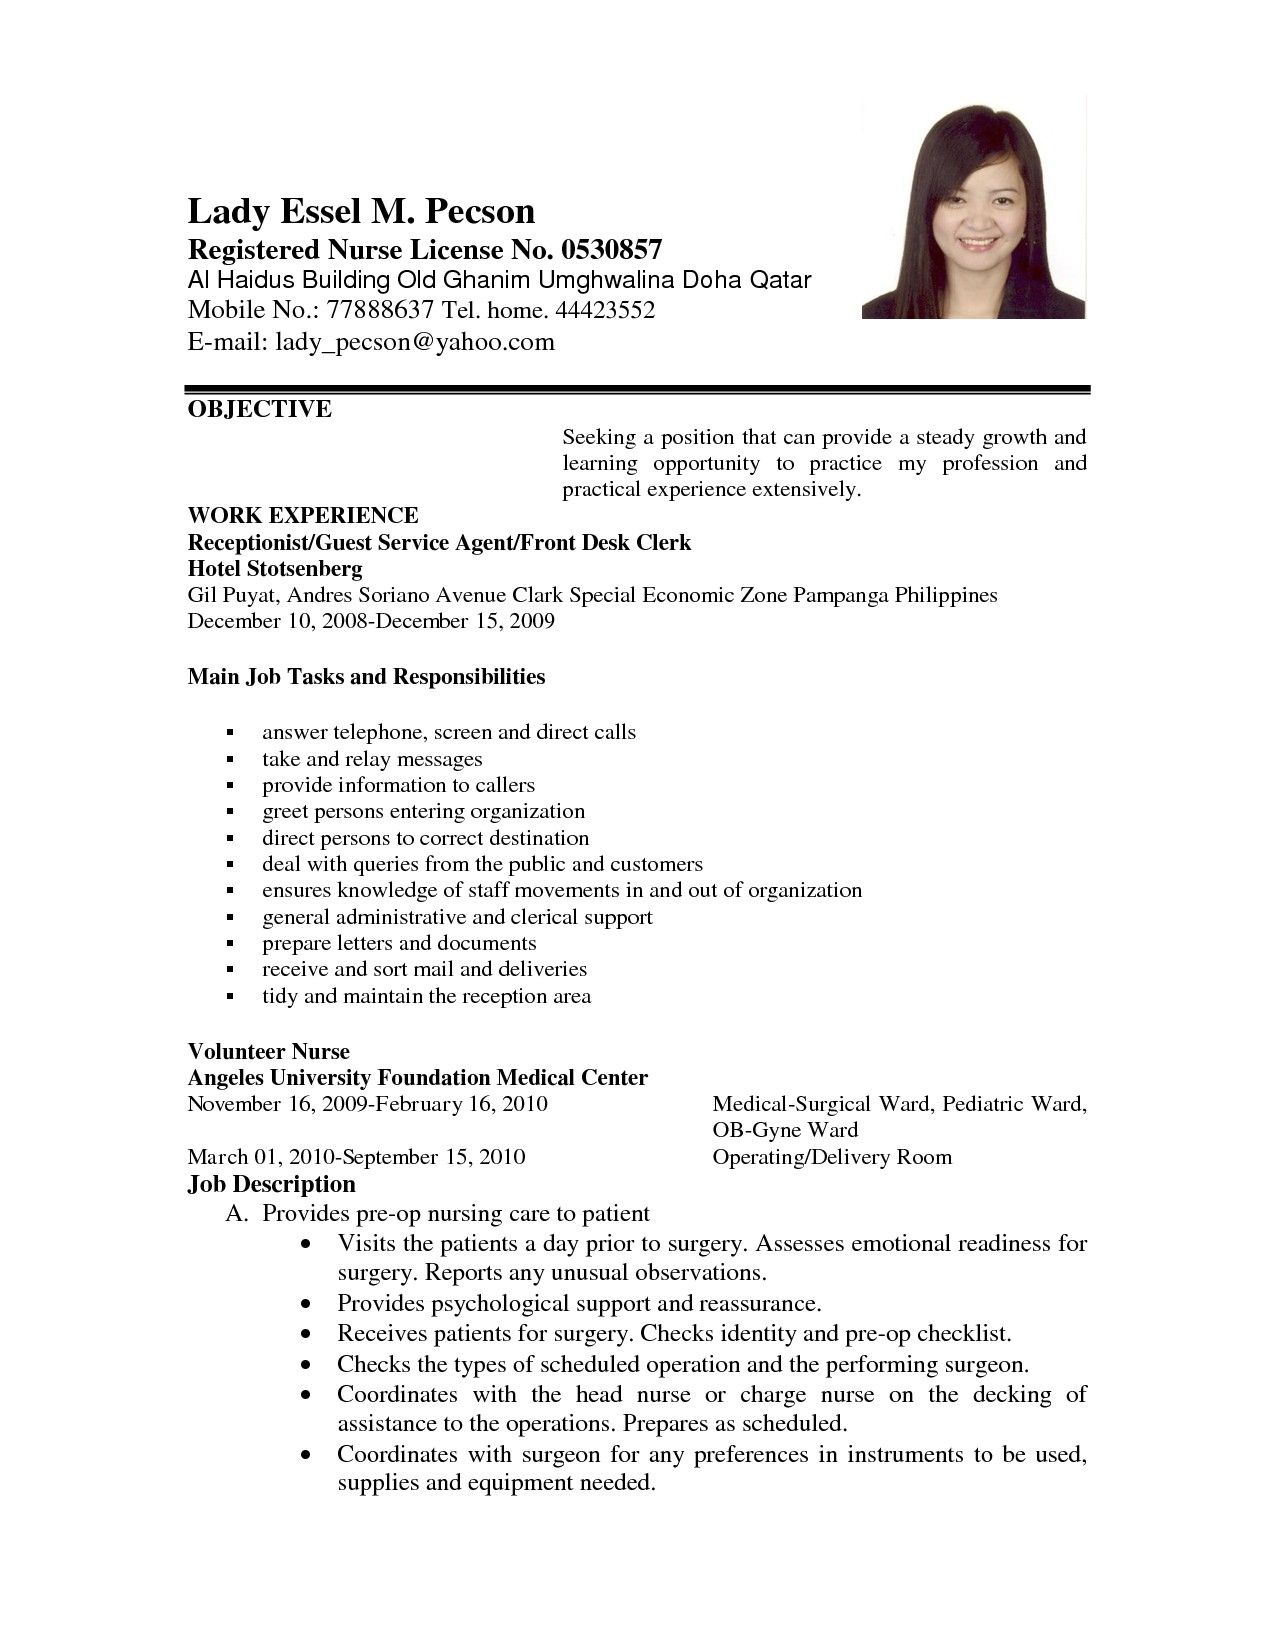 Download New Examples Of Job Application Letters for